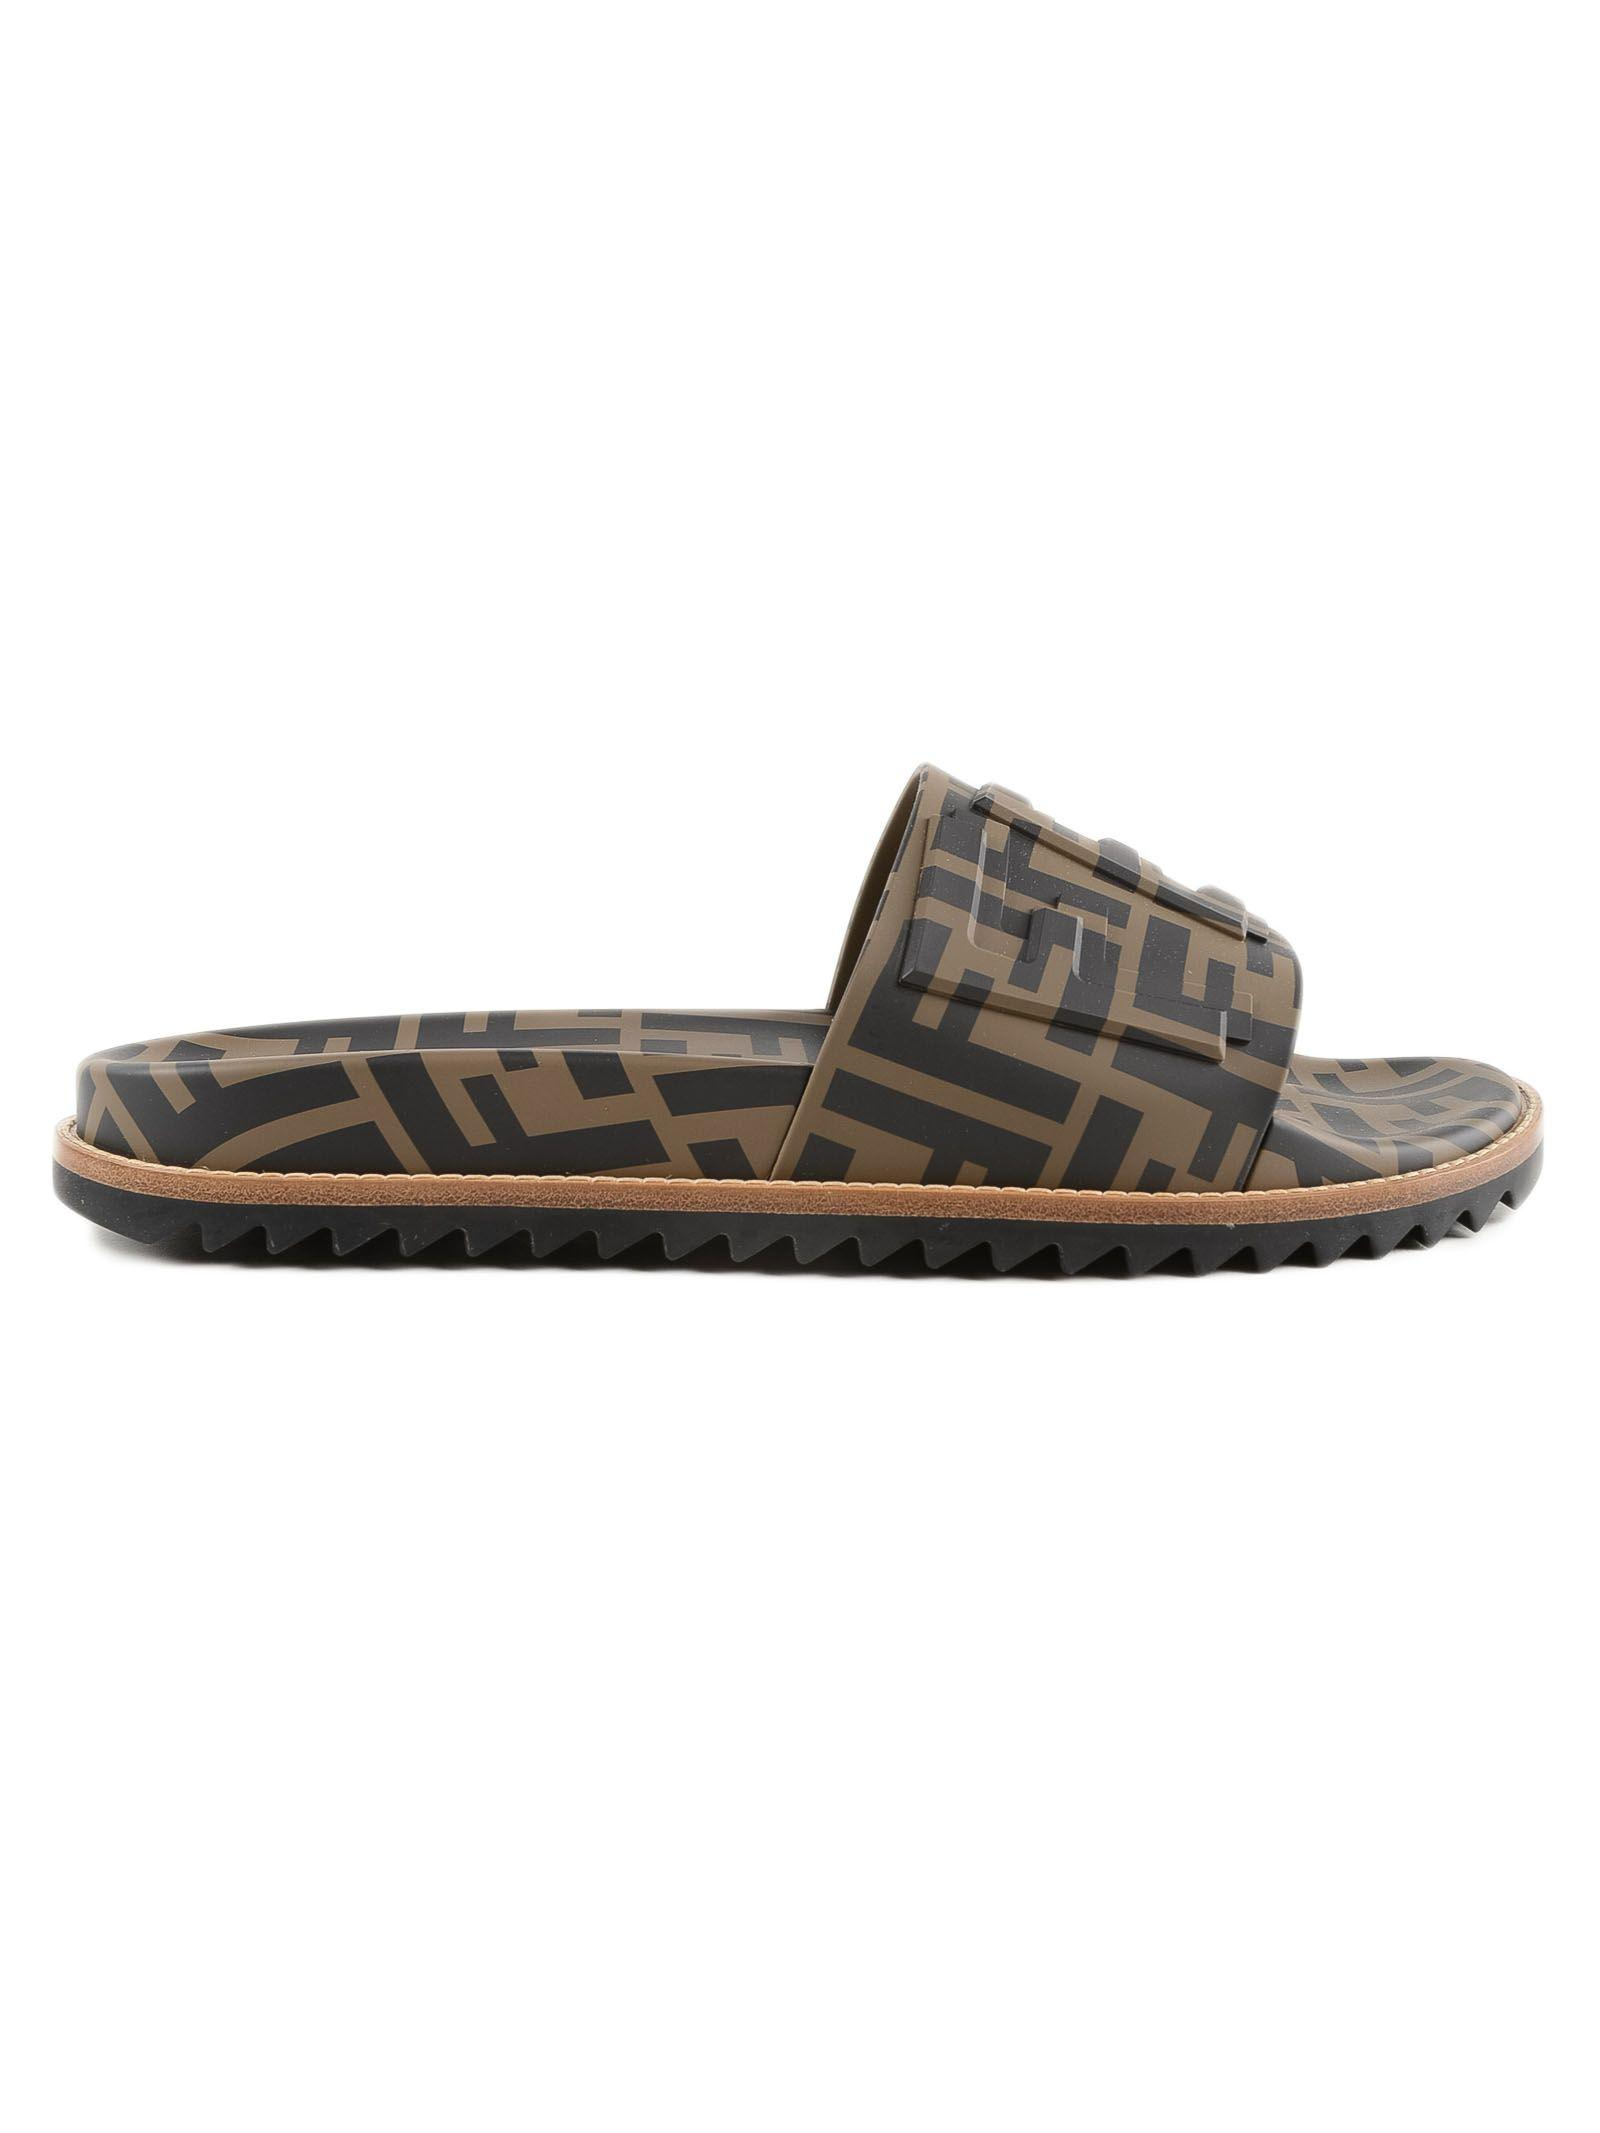 1d5013570 Fendi Men's Rubber Pool Slide Sandals W/ Raised Logo Detail In F1425-Maya  Nero